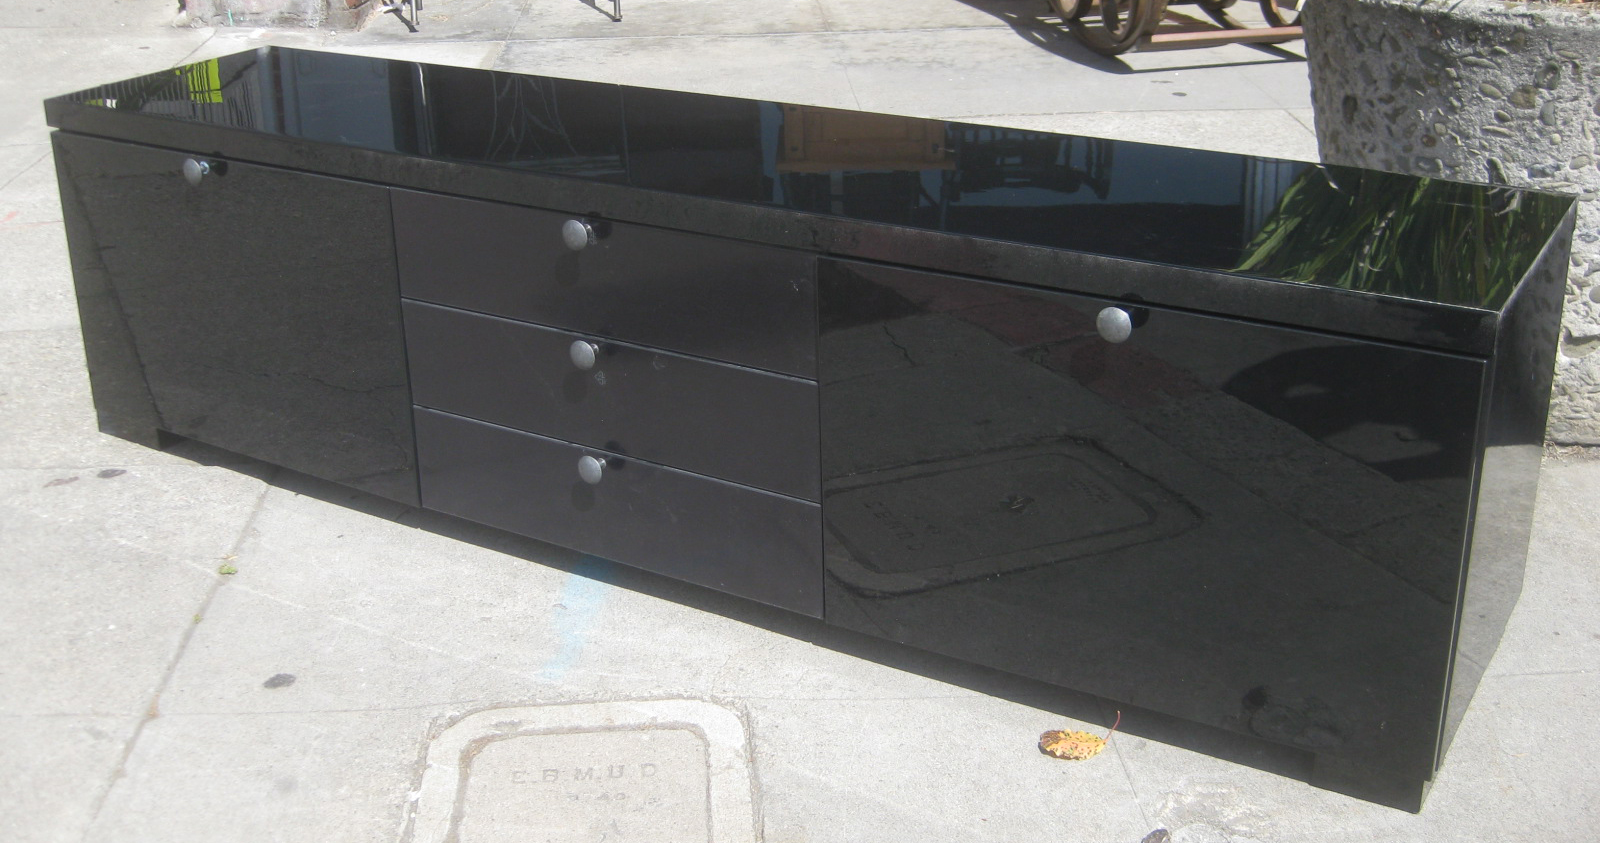 UHURU FURNITURE & COLLECTIBLES: SOLD - Long Low TV Stand - $80